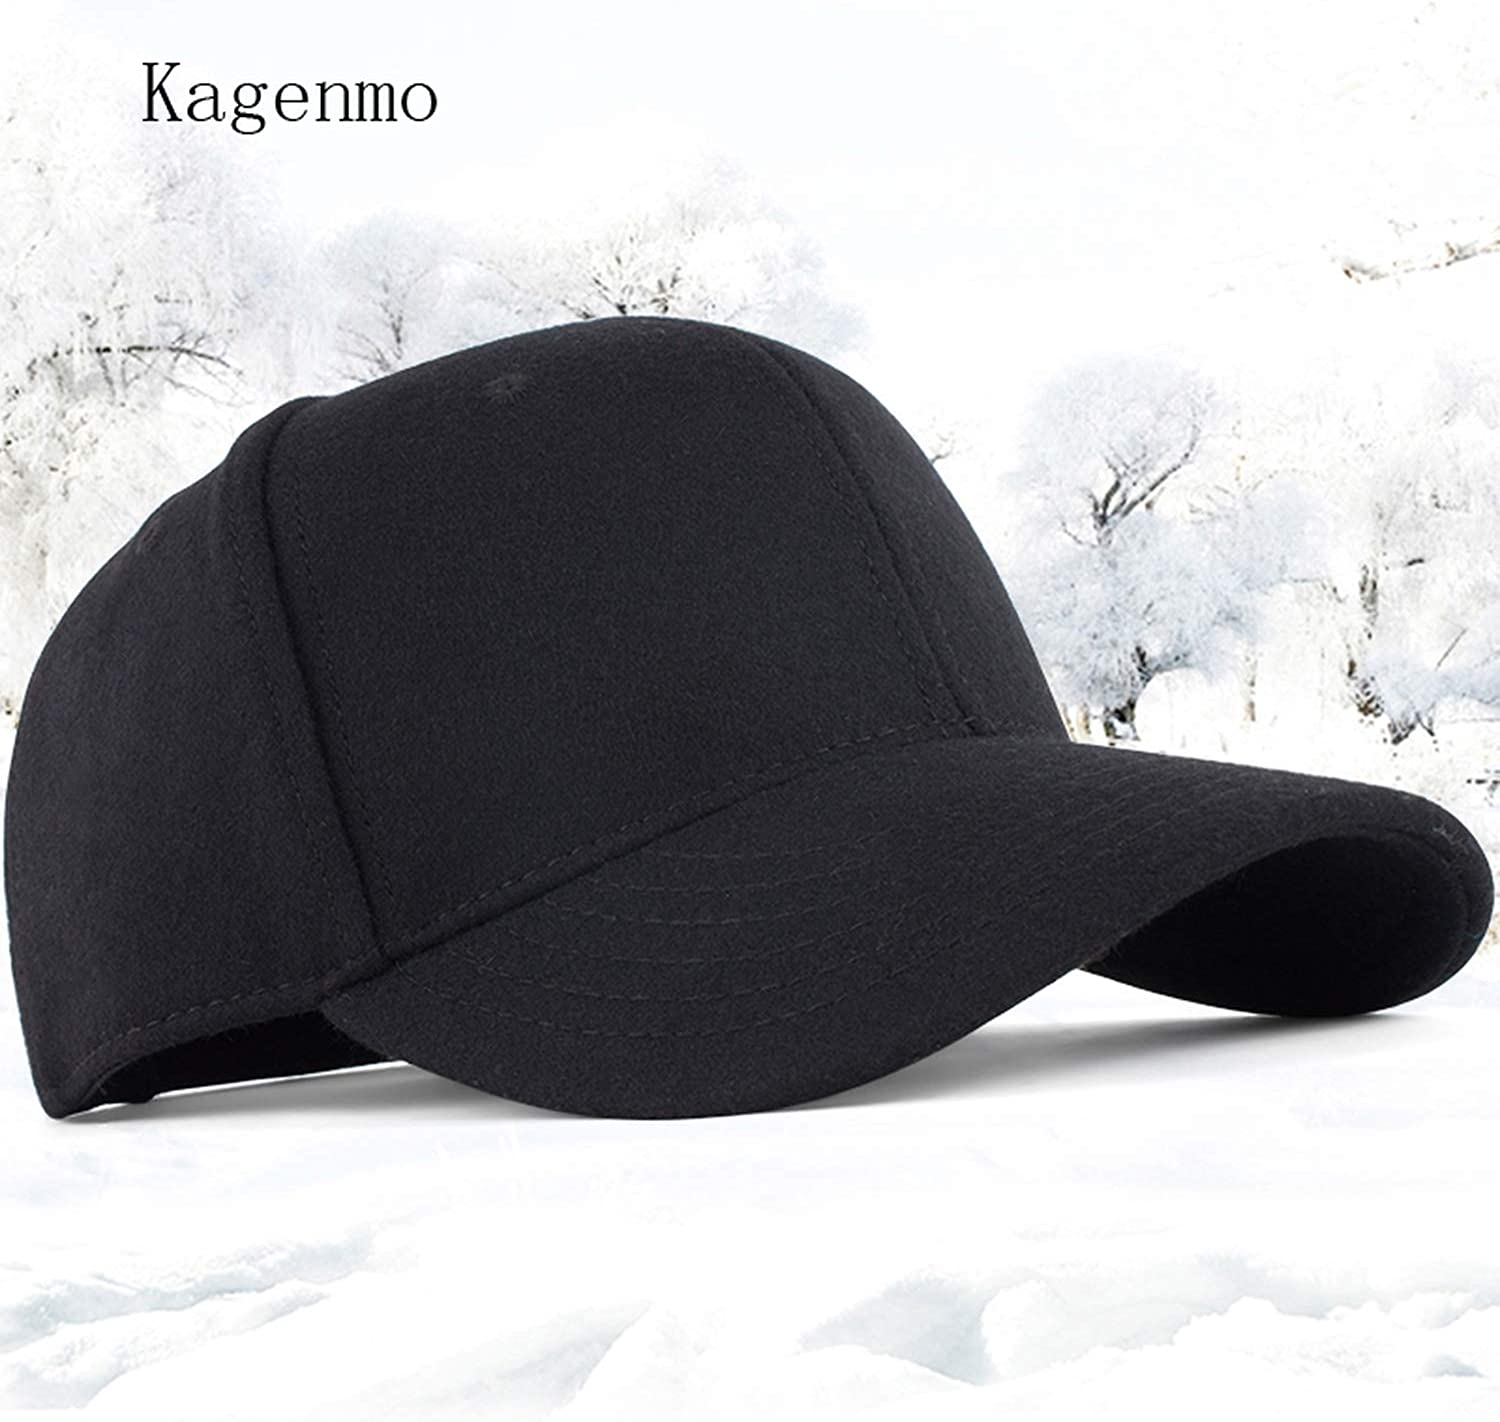 Wilbur Gold Kagenmo Male hat Male hat Woolen Baseball Cap Cap The Elderly Autumn and Cotton hat for Man